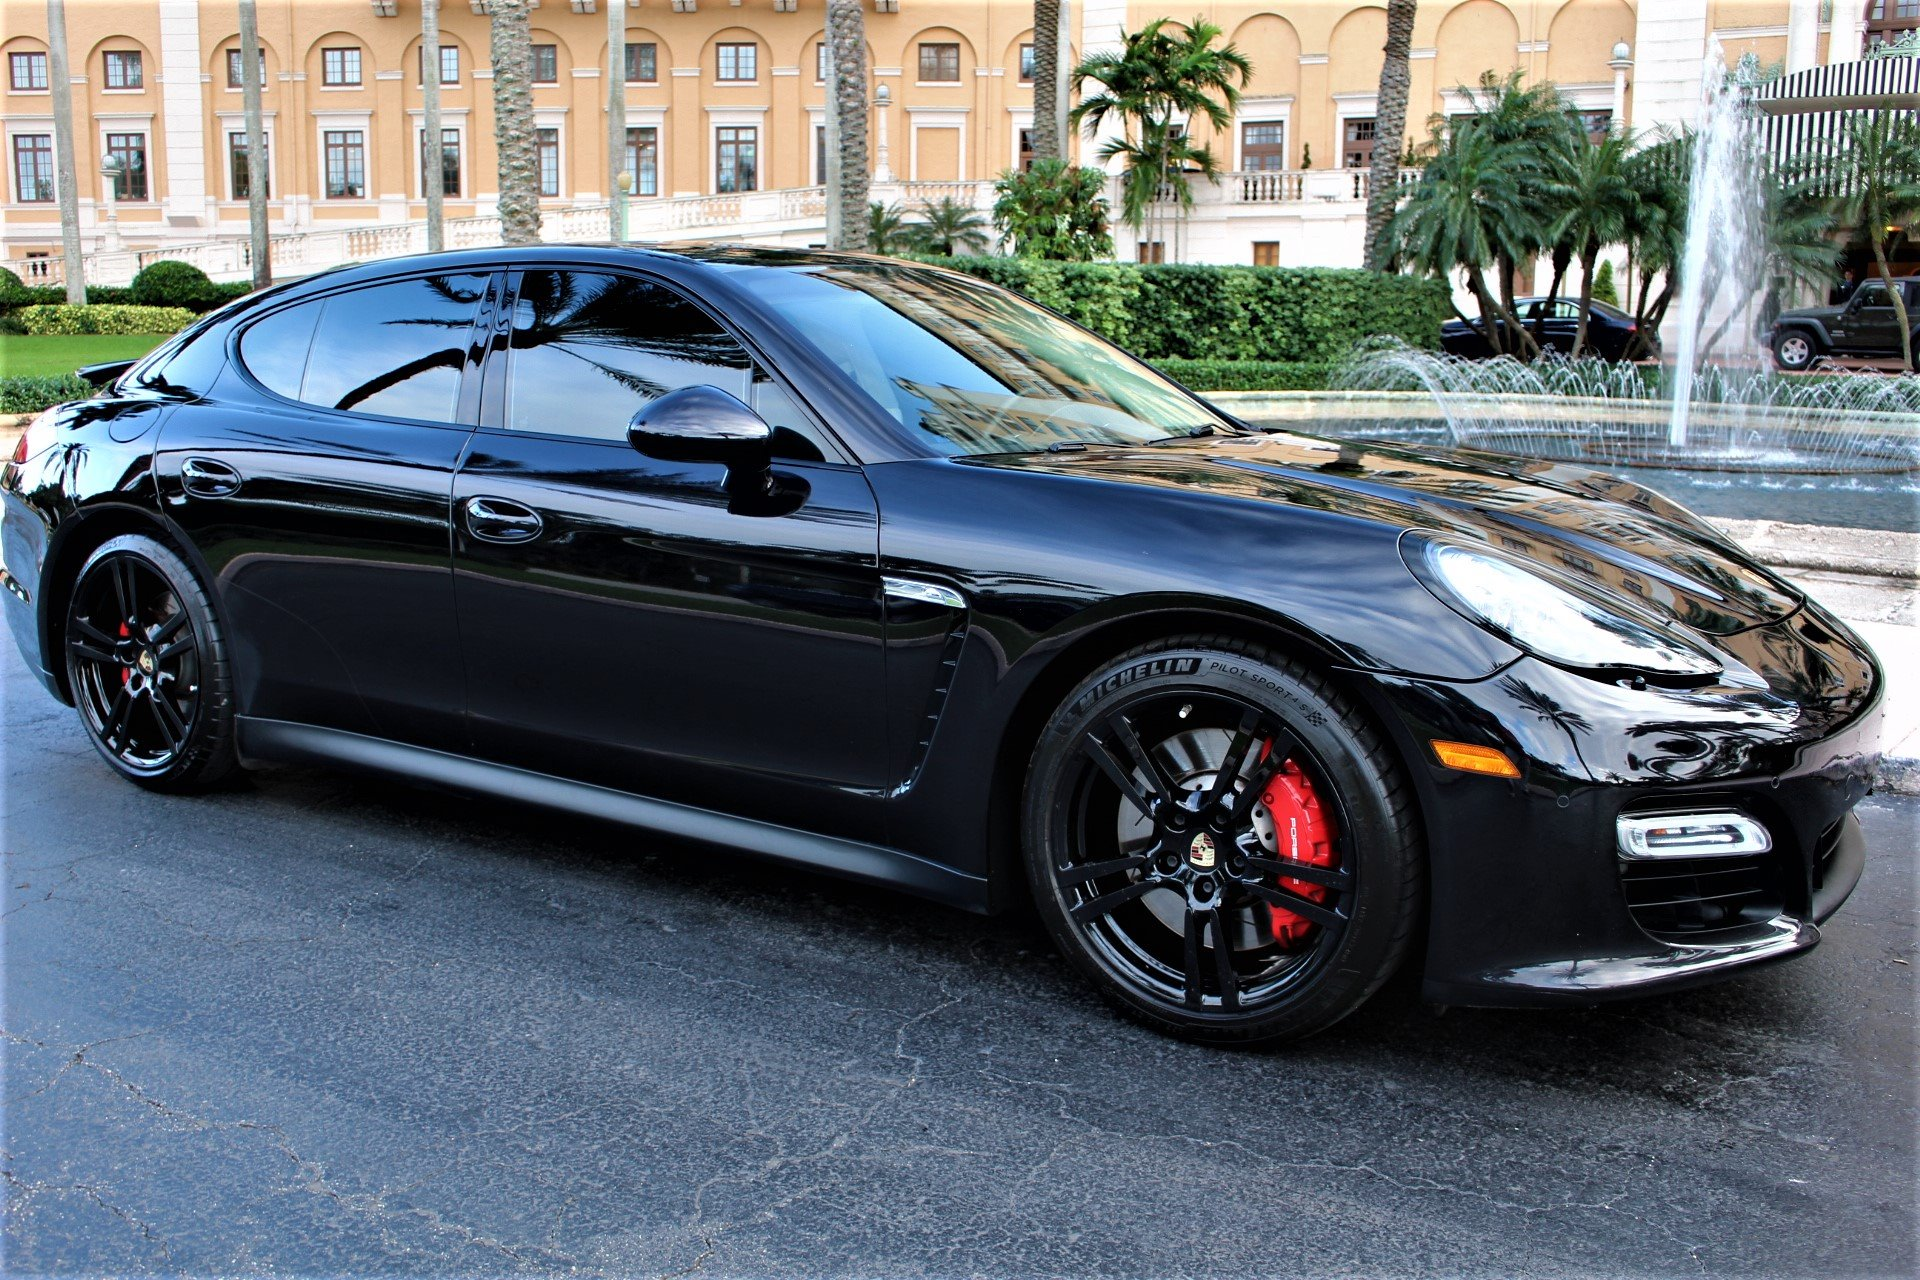 Used 2013 Porsche Panamera GTS for sale Sold at The Gables Sports Cars in Miami FL 33146 3